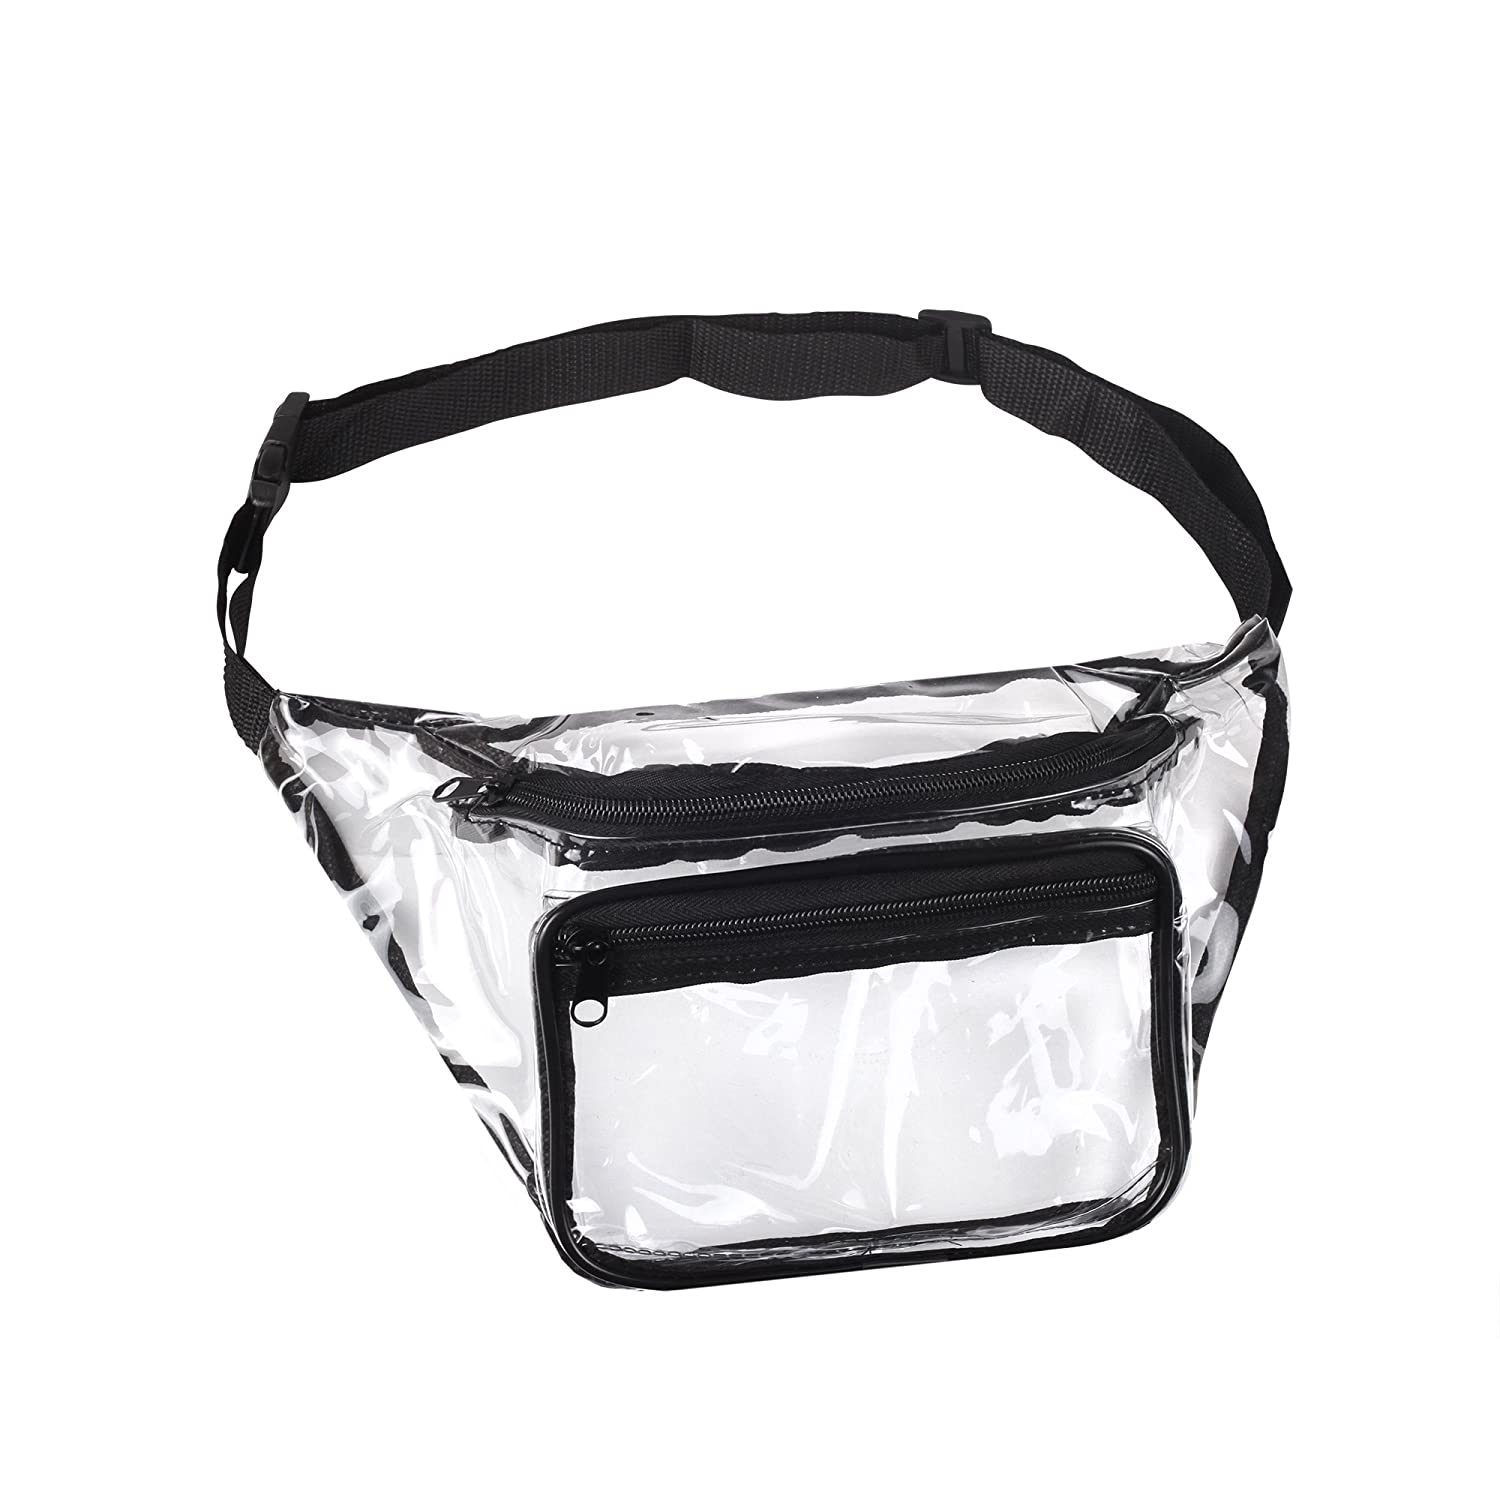 3 Pack Transparent Waist Fanny Pack Clear Purse Security Stadium Pockets Adjustable Strap